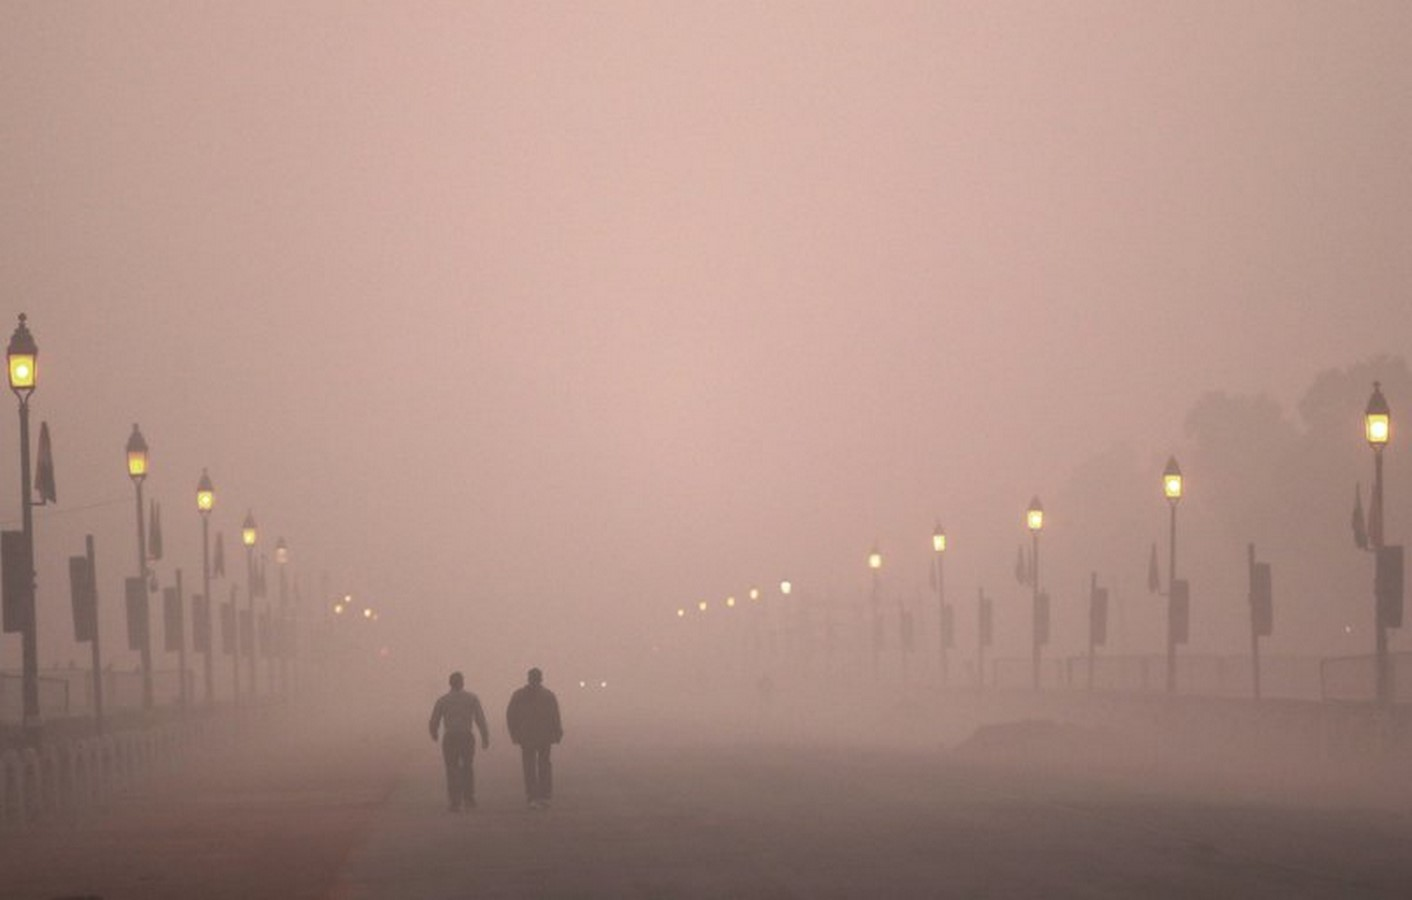 Architecture and the Environment – New Delhi's Pollution Crisis and an Architect's Role - Sheet1